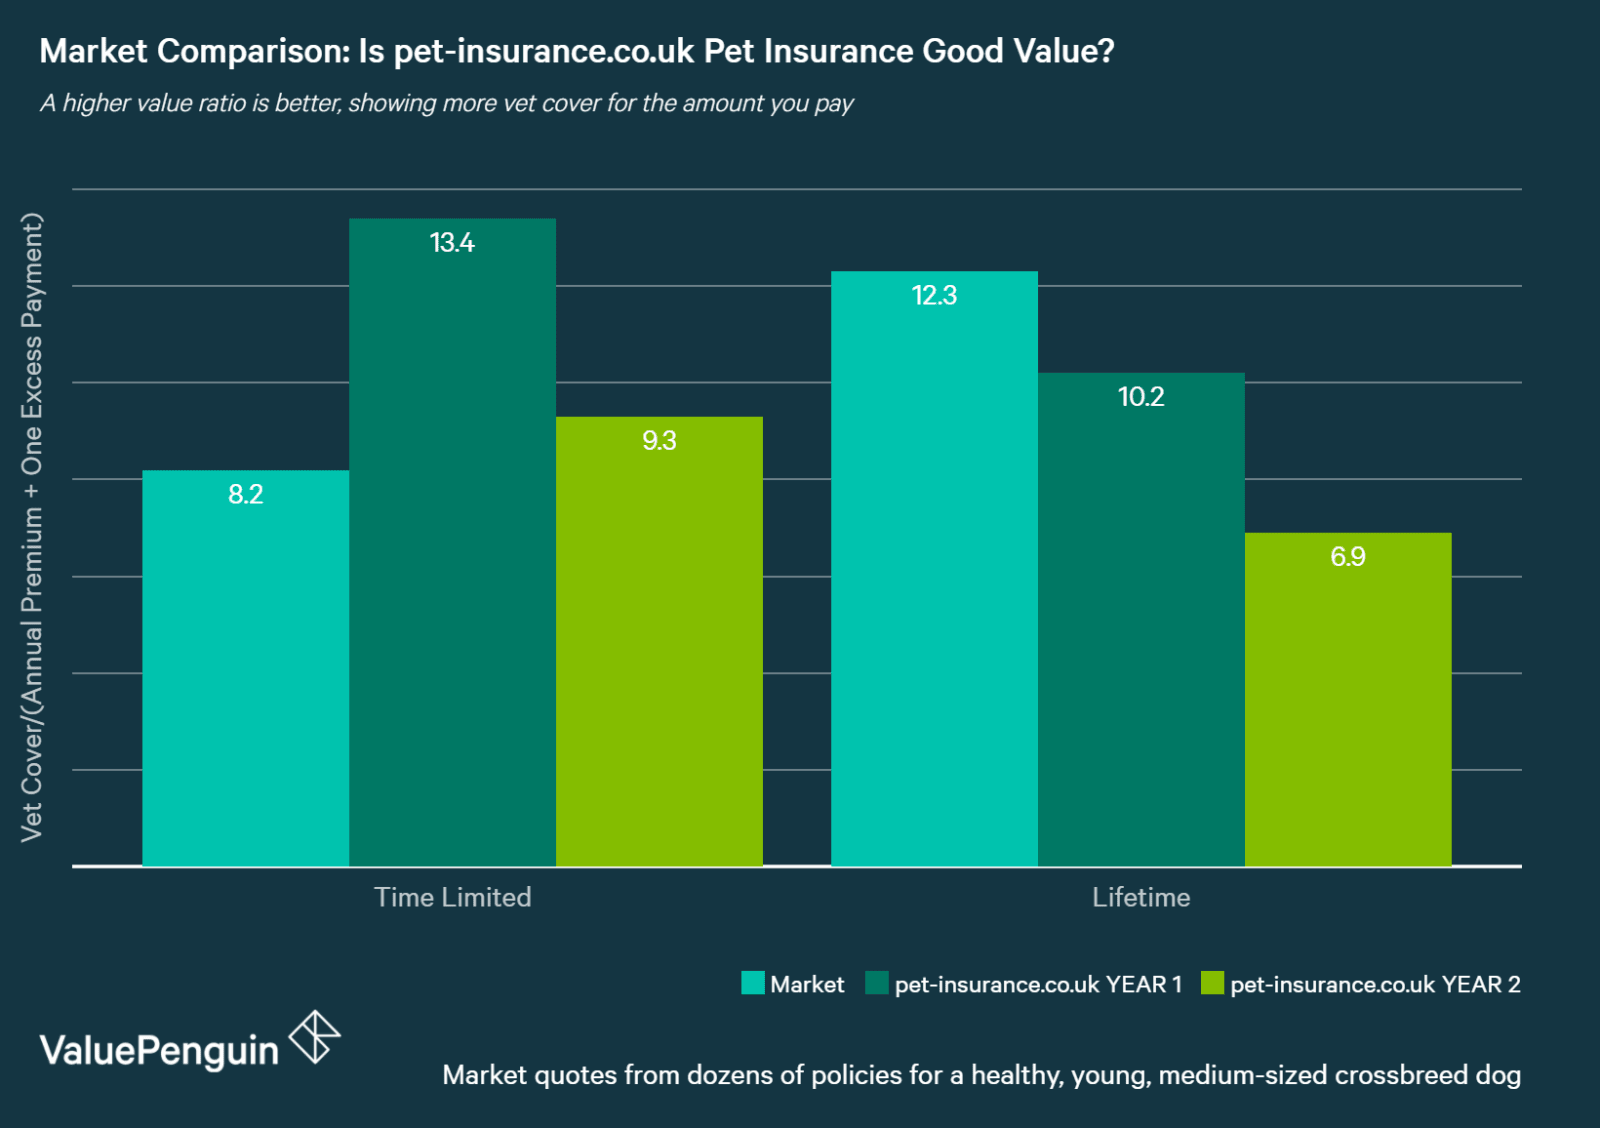 chart comparing pet insurance quotes by policy type for pet-insurance.co.uk vs the market average